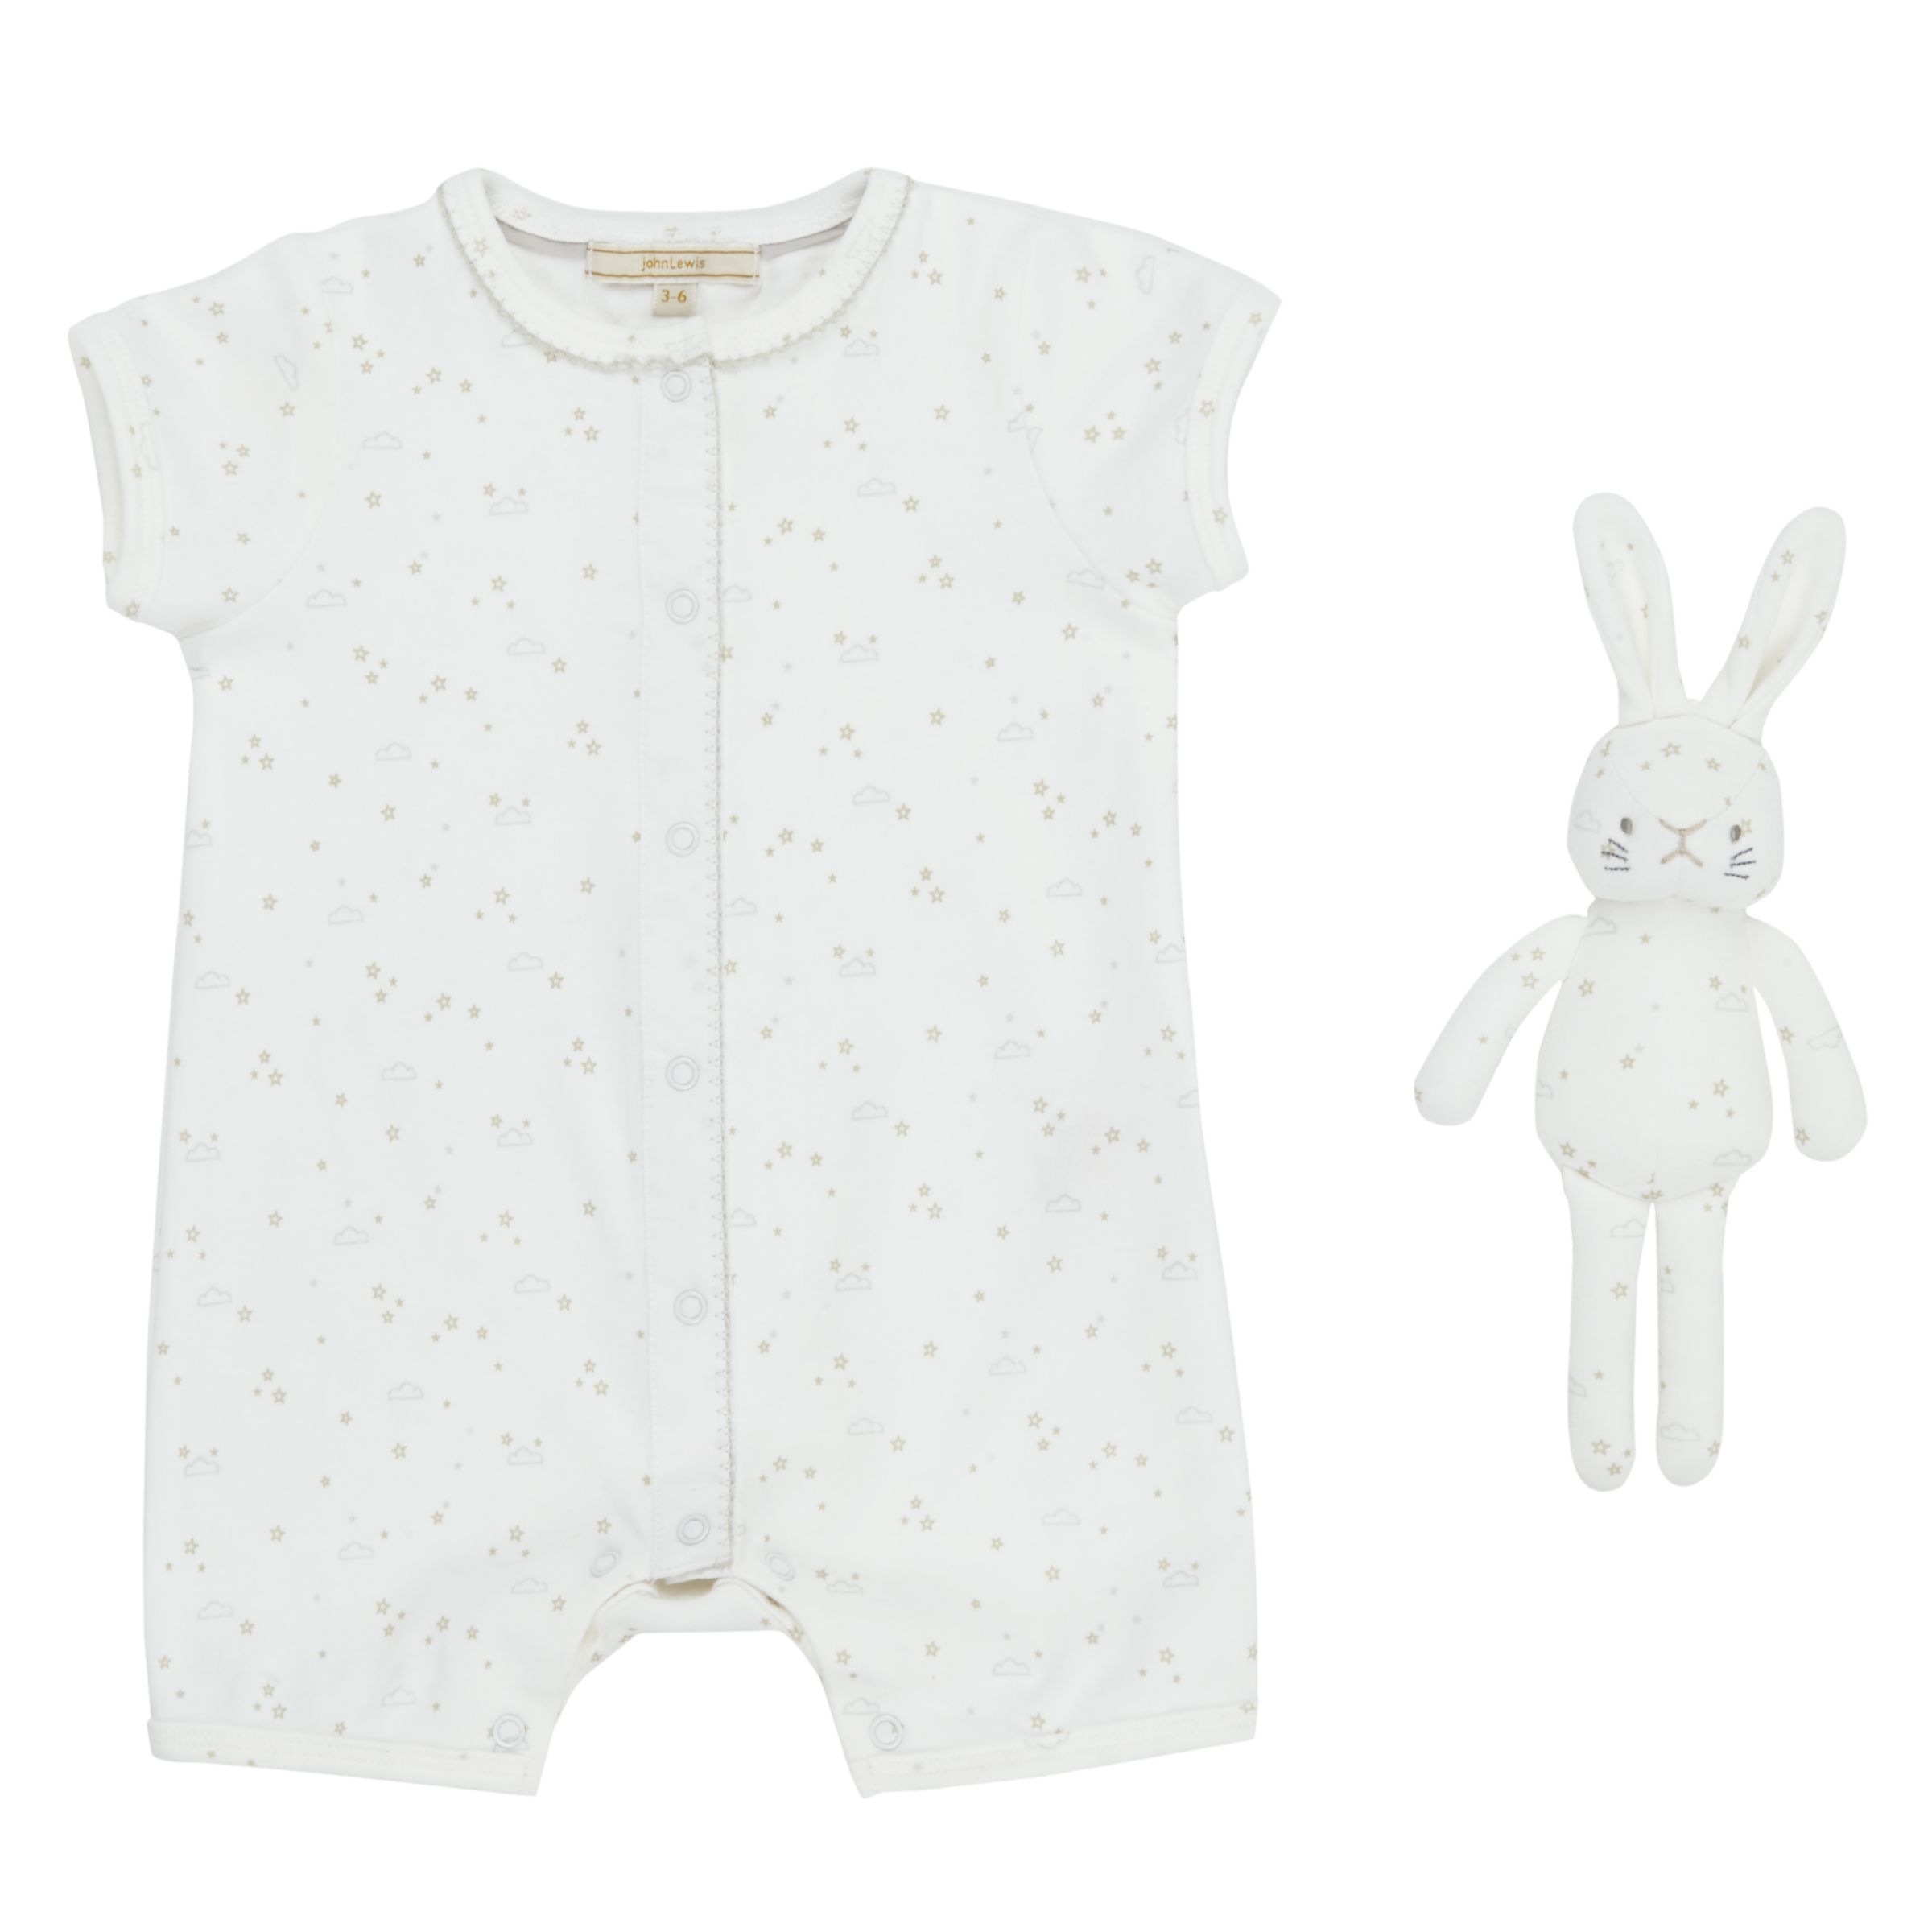 John Lewis Heirloom Collection John Lewis Heirloom Collection Baby Printed Romper with Toy, White